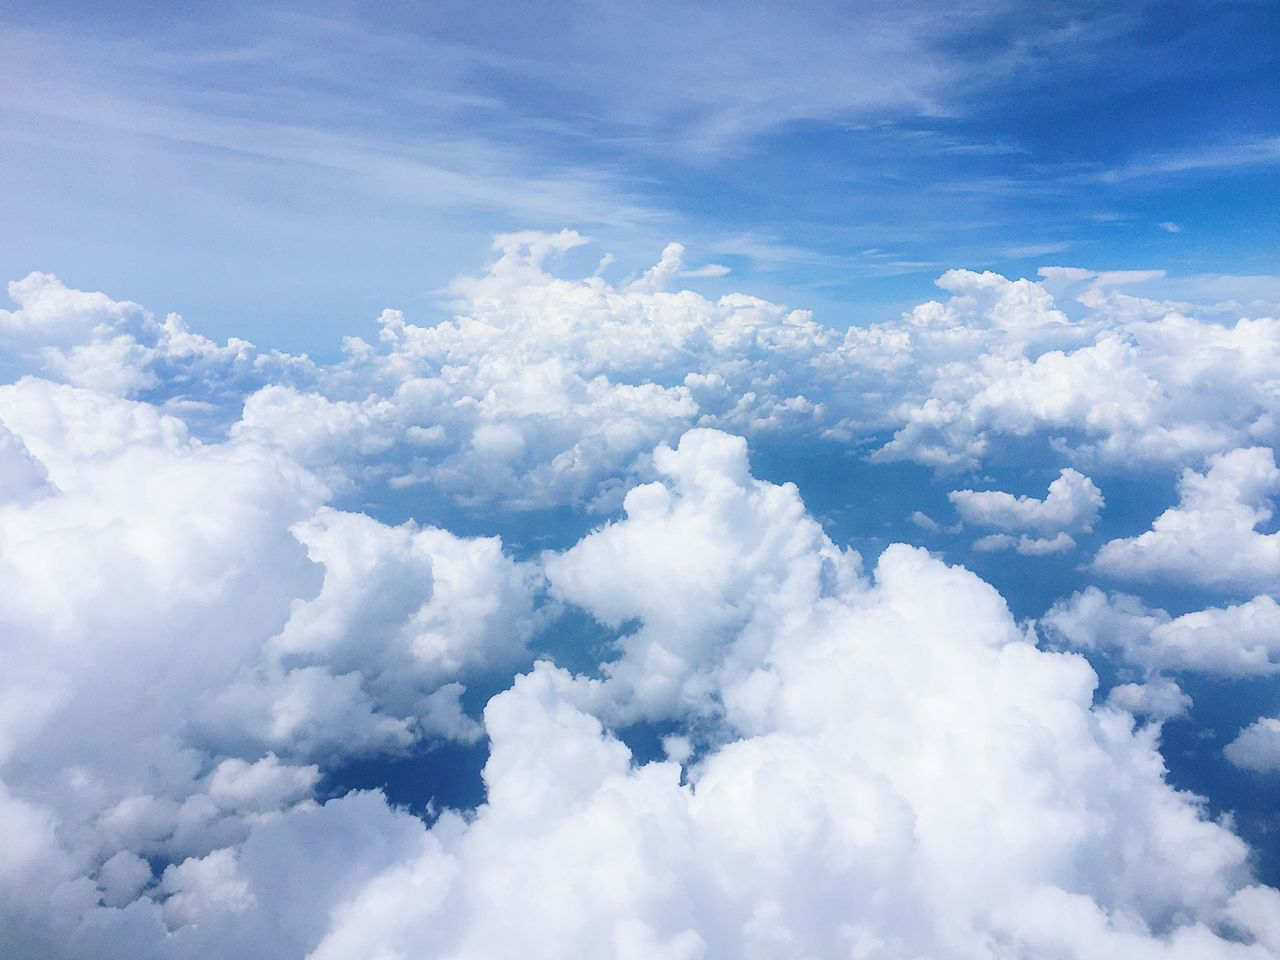 Backgrounds Beauty In Nature Blue Blue Sky Blue Wave Cloud - Sky Cloudscape Cumulus Cloud Day Low Angle View Nature No People Outdoors Scenics Sky Sky And Clouds Sky Only Sky_collection Skyporn Skyscraper Tranquility Flying High